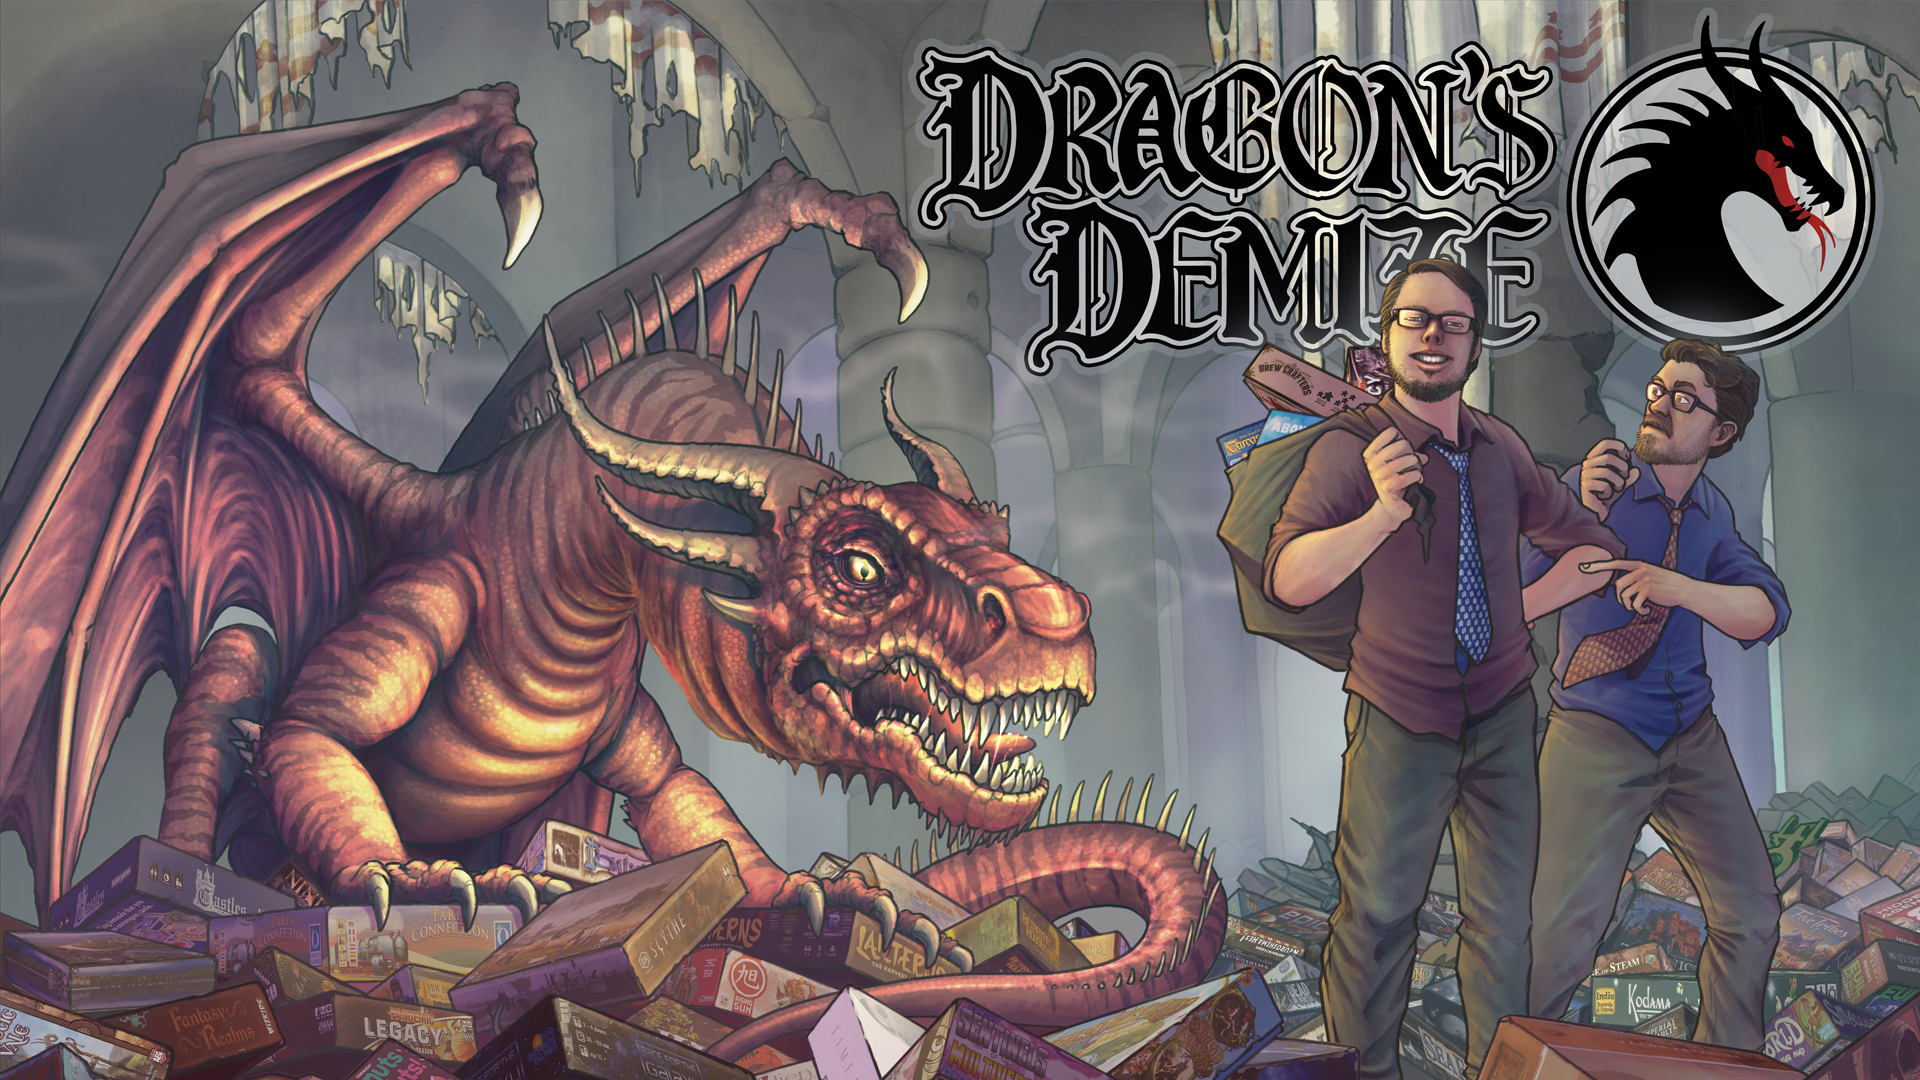 Welcome to Dragon's Demize